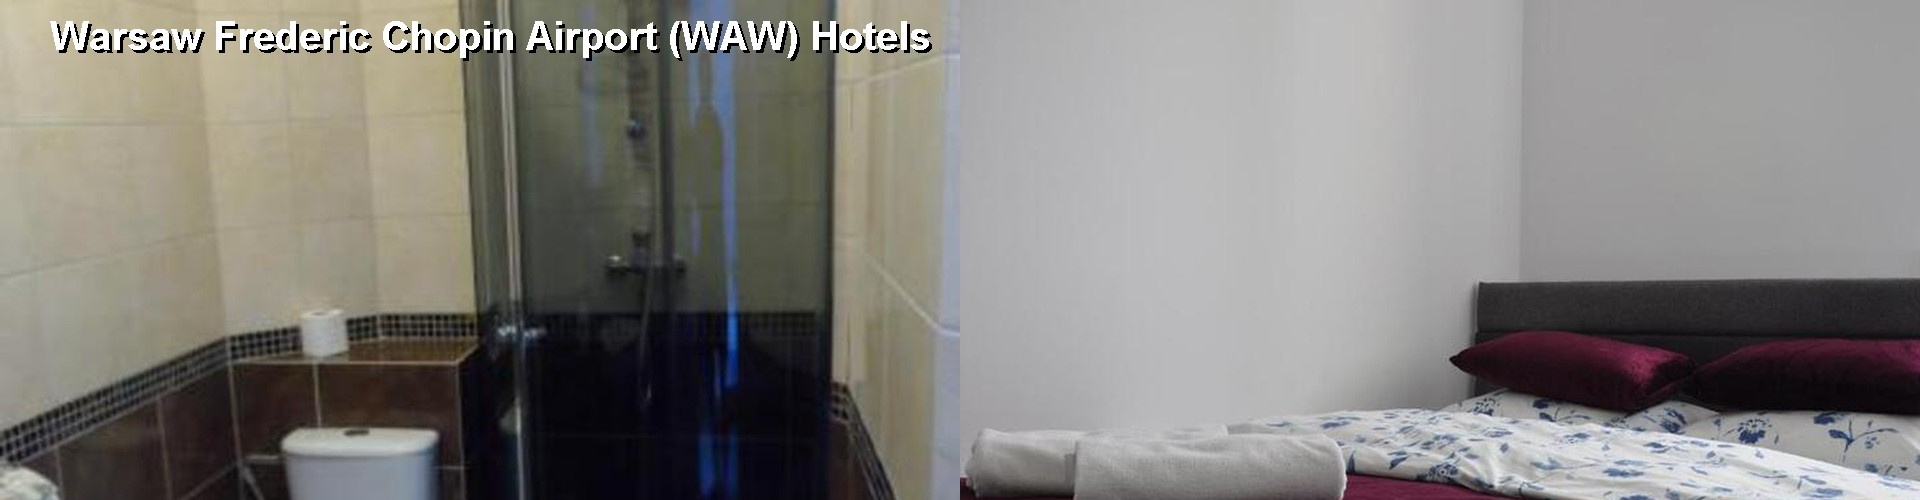 5 Best Hotels Near Warsaw Frederic Chopin Airport Waw